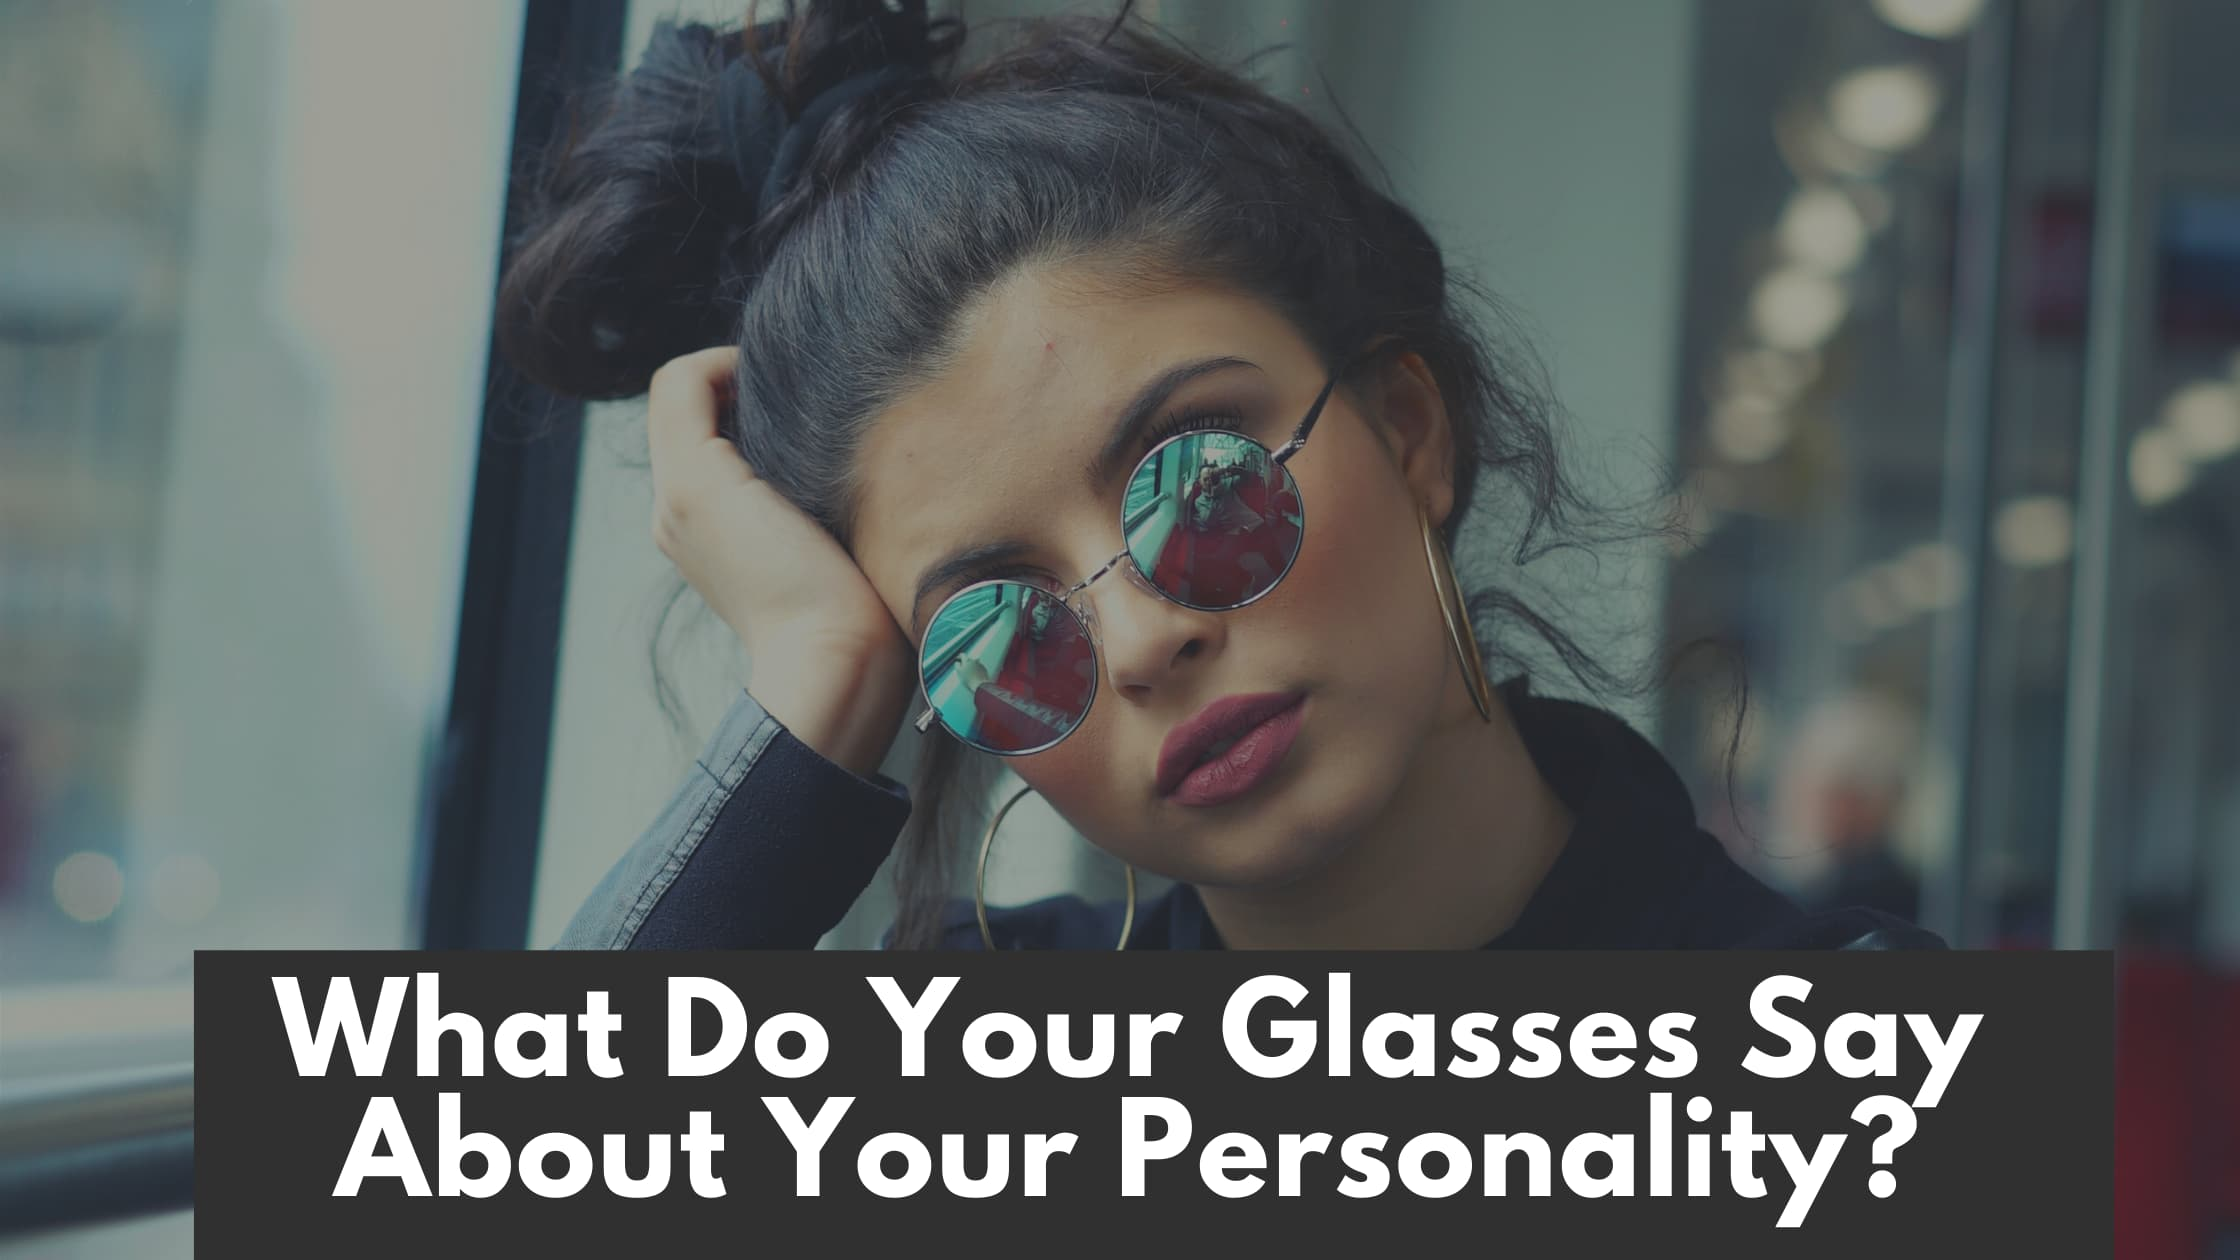 What your glasses say about your personality?